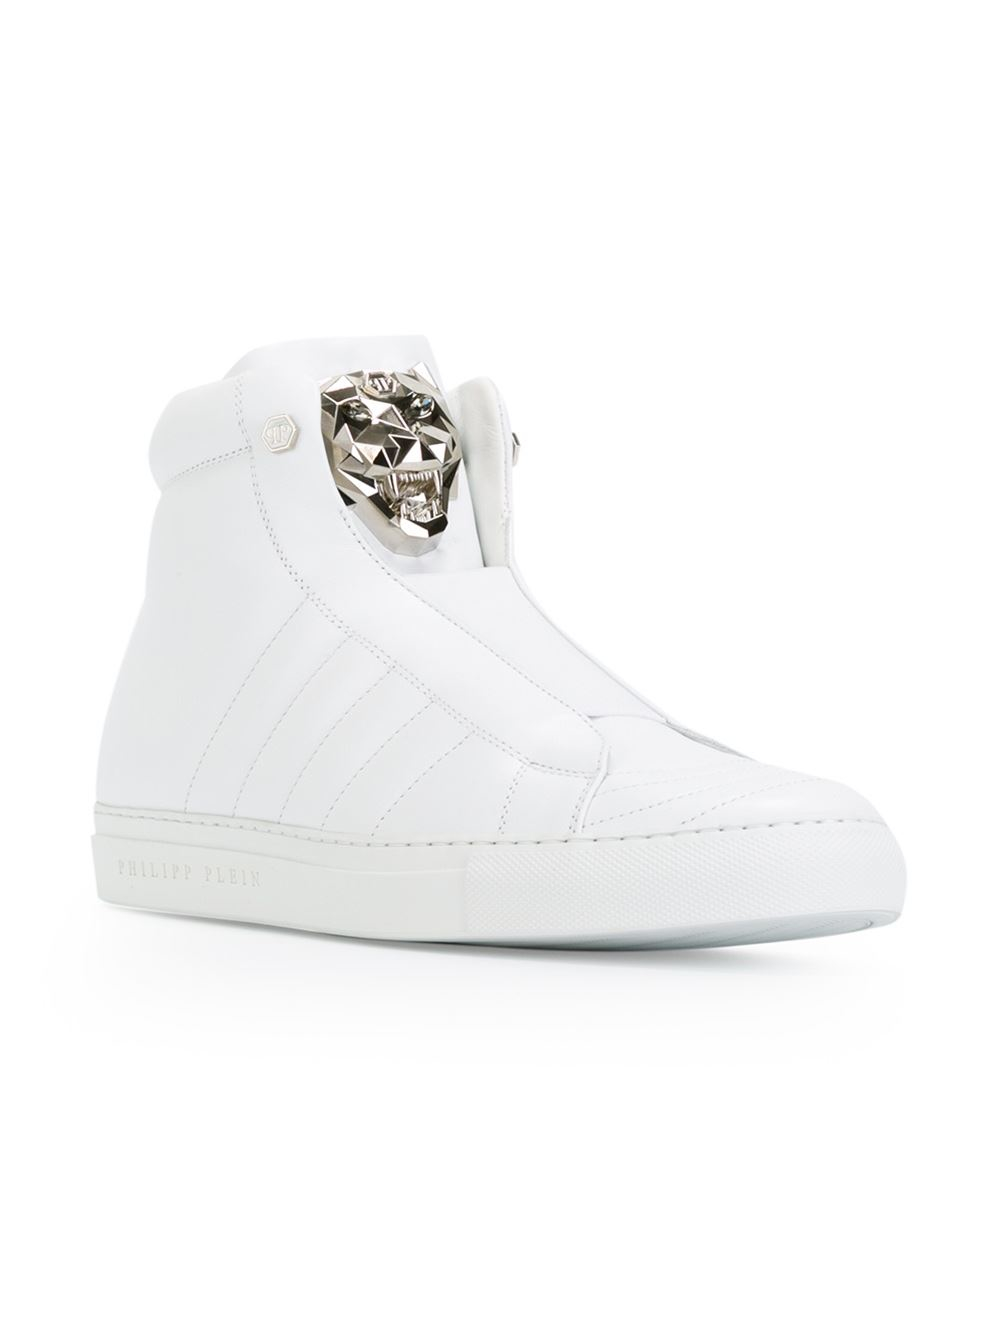 Baskets Basses Philipp Plein Haut - Blanc 4cRk0